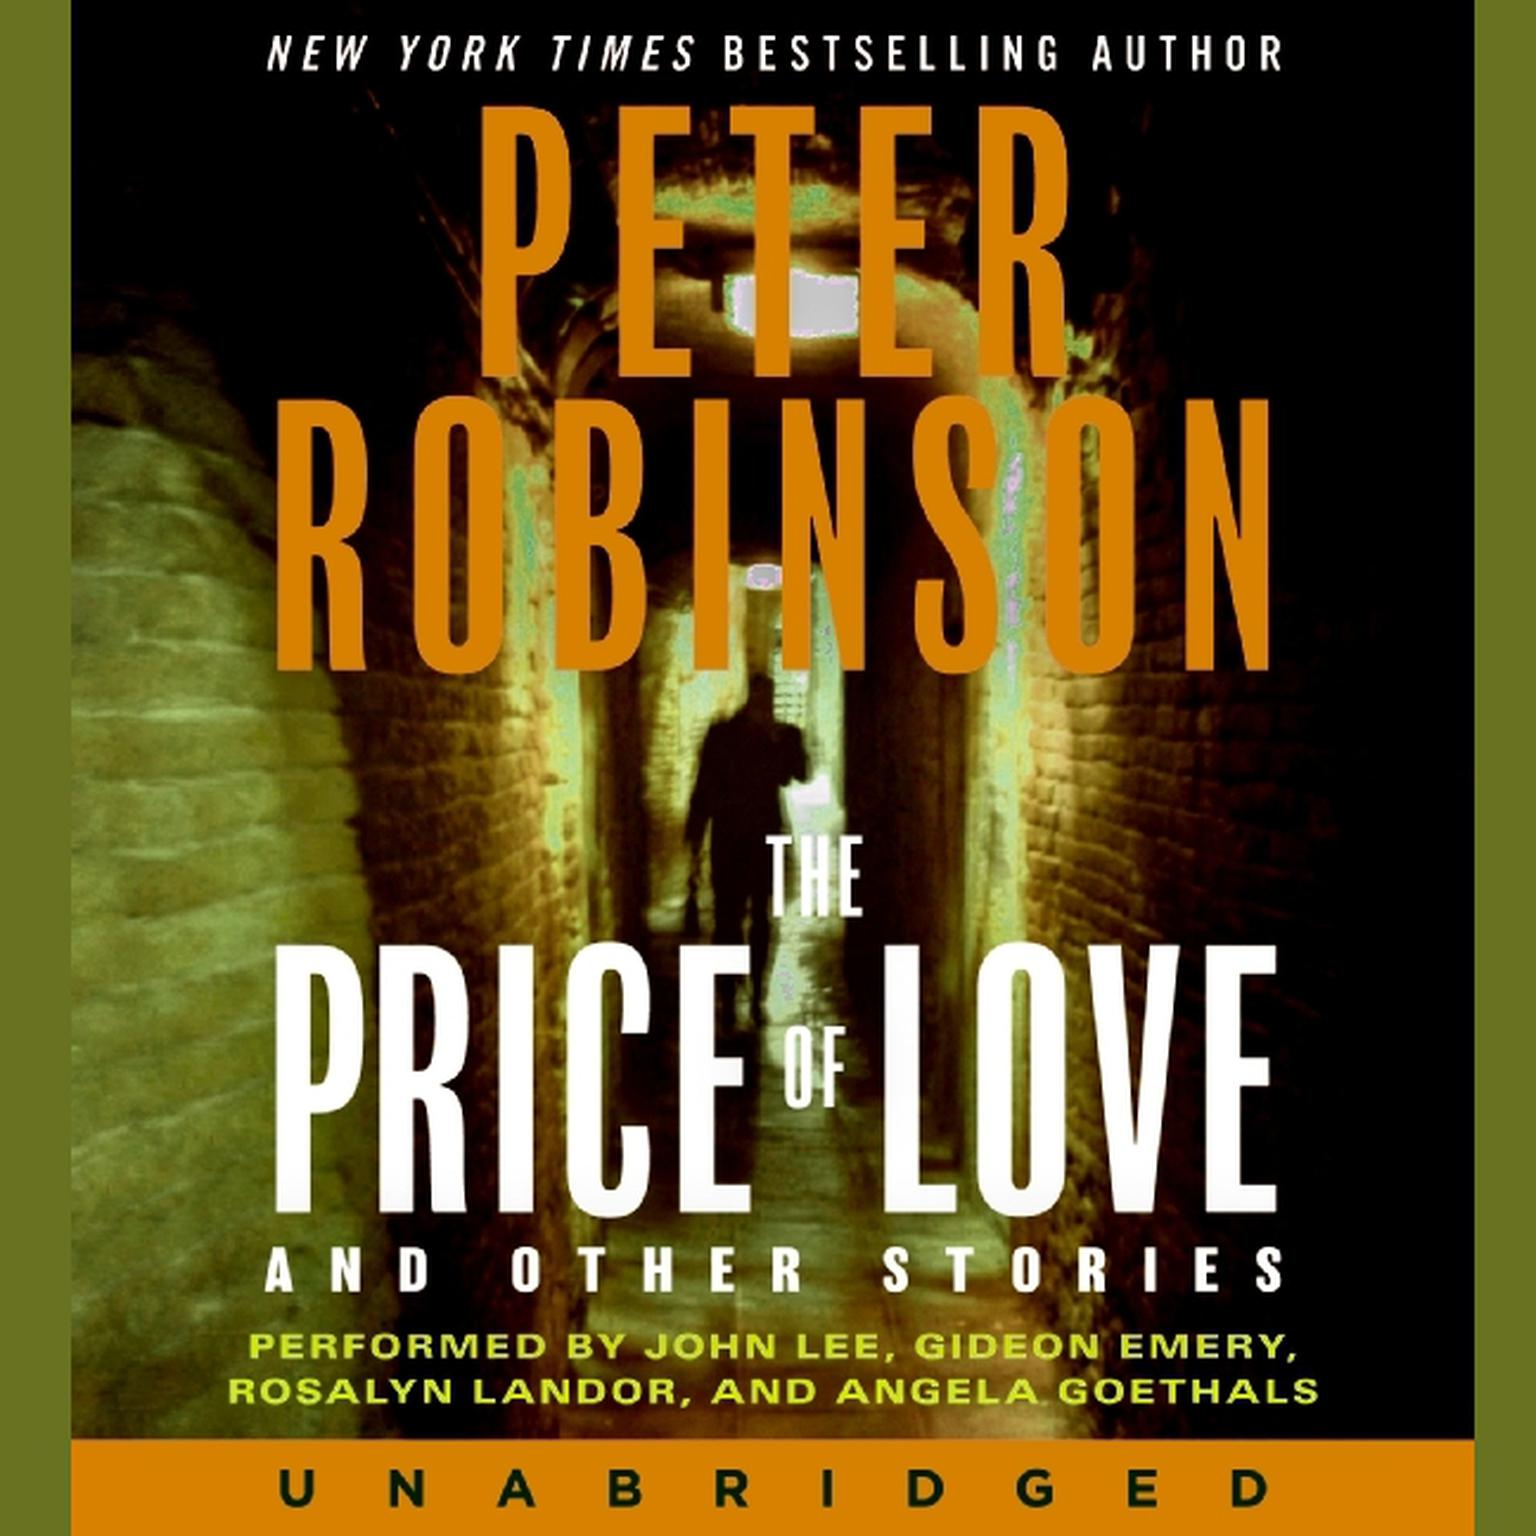 Printable The Price of Love and Other Stories Audiobook Cover Art